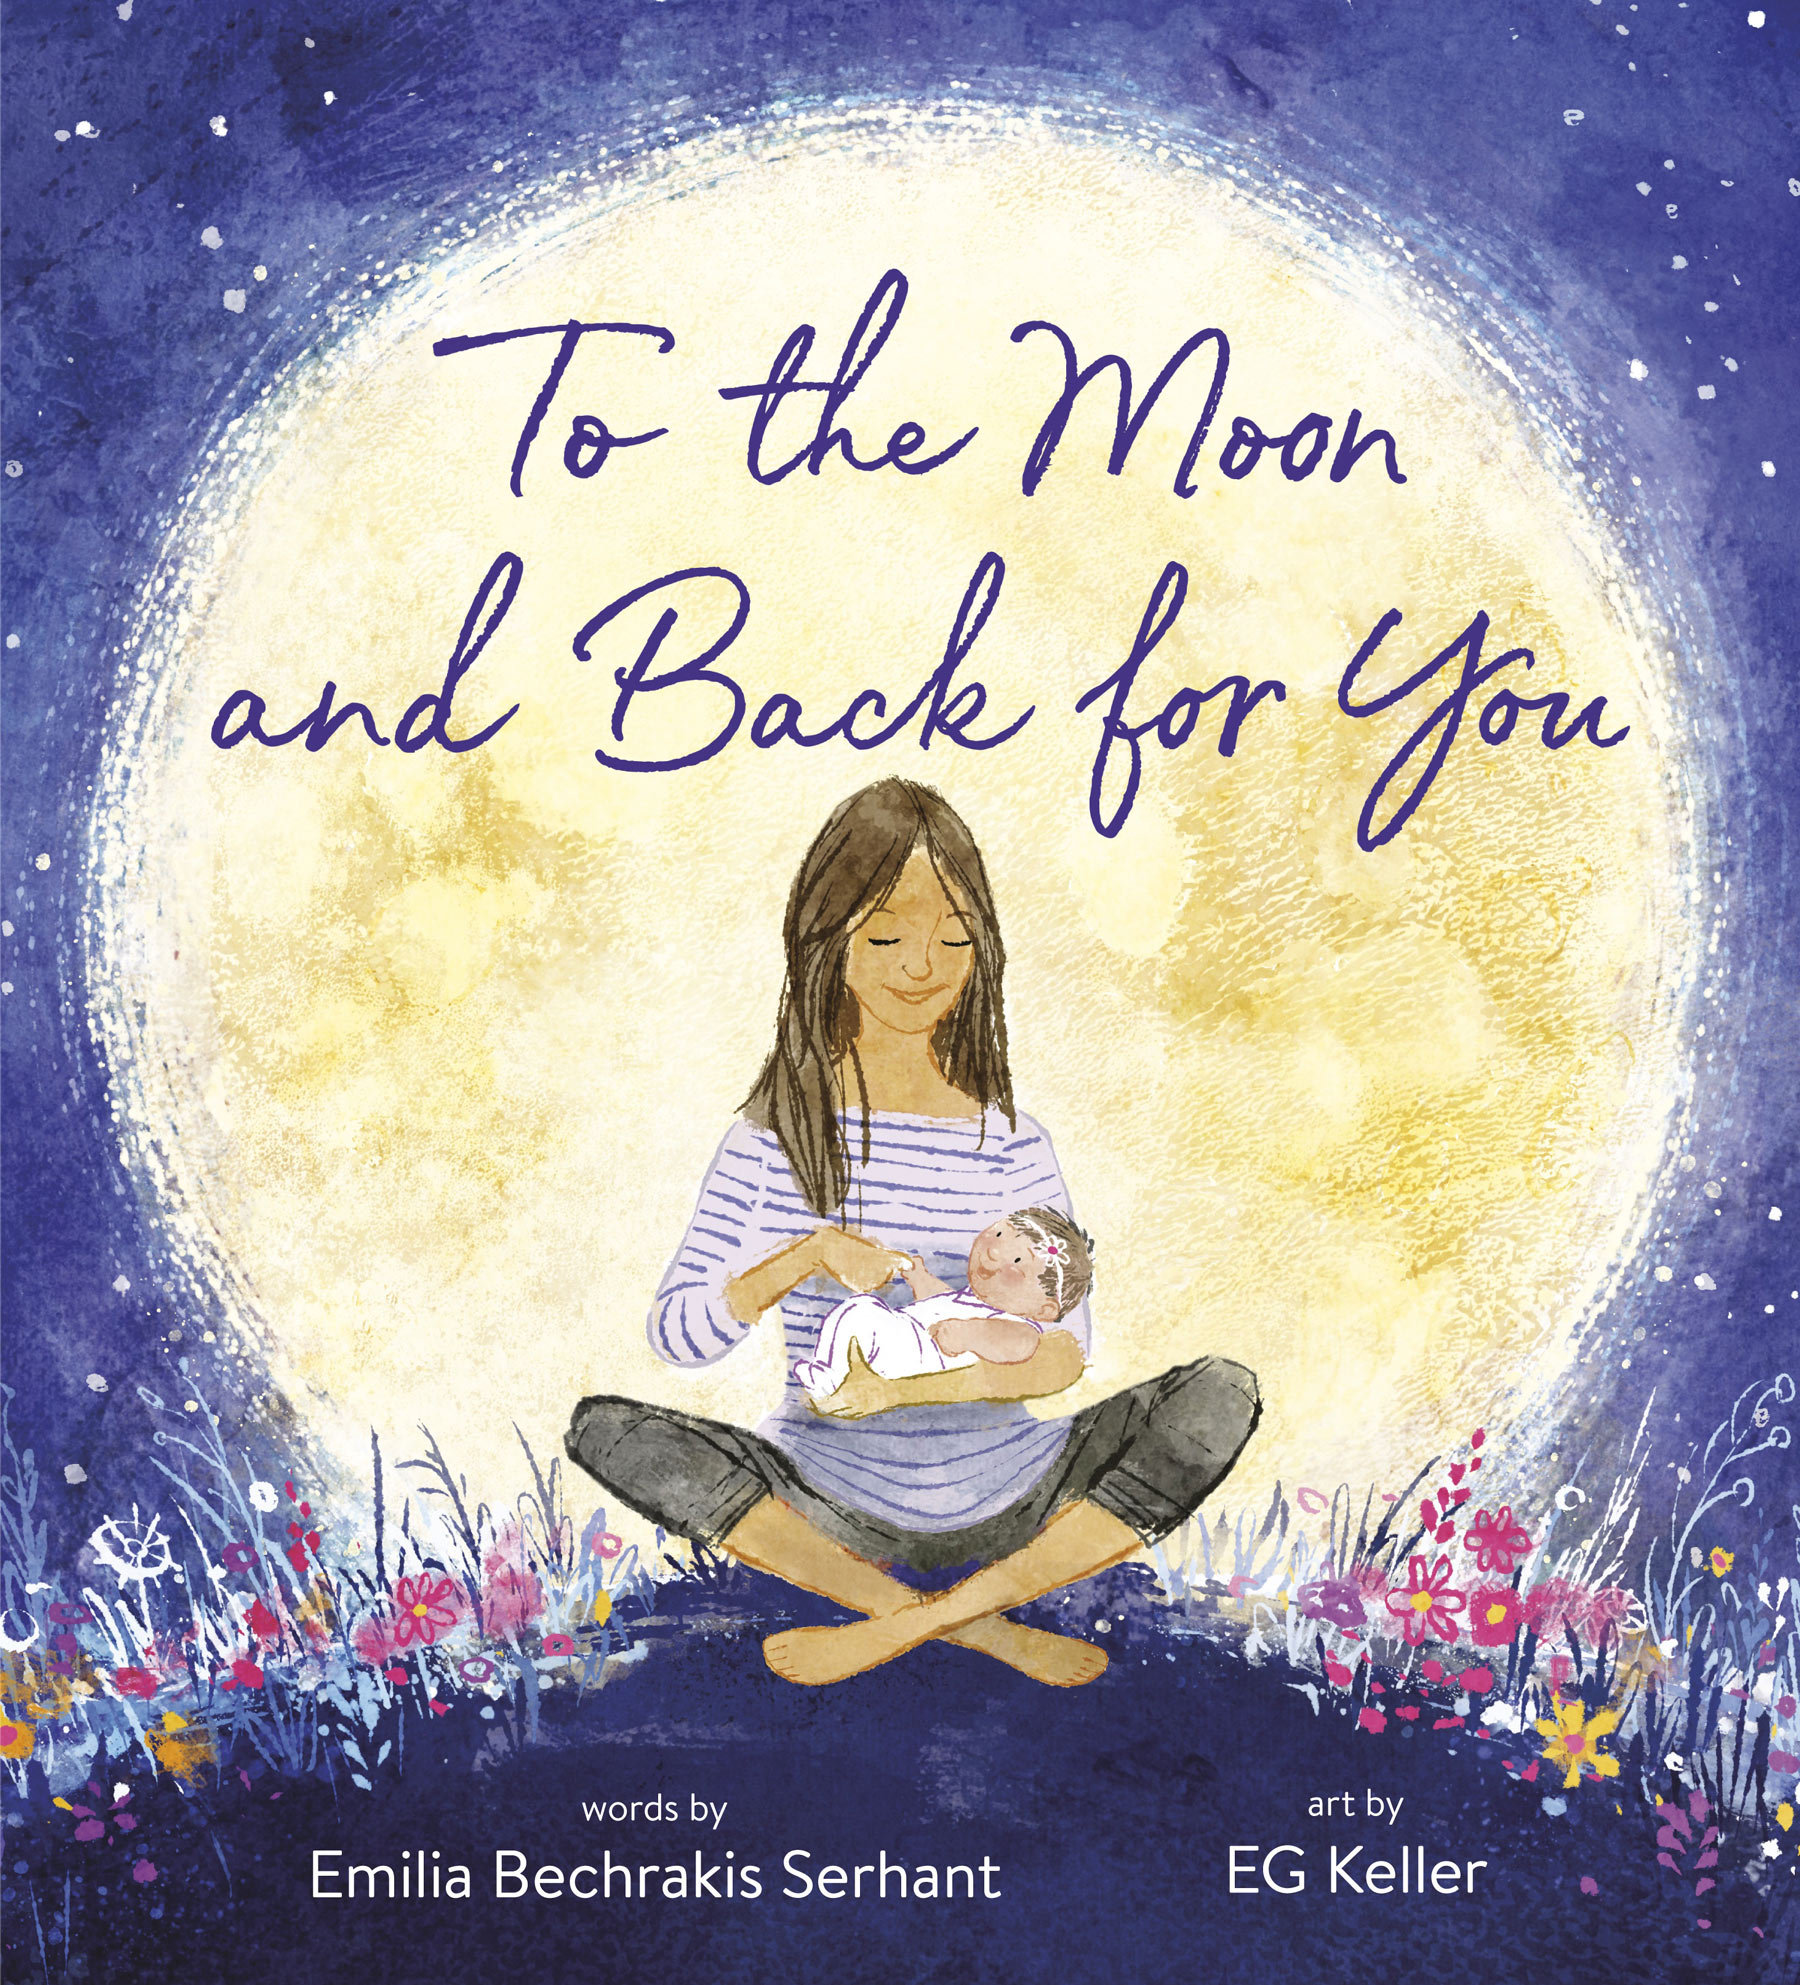 to the moon. and back for you book by Emilia Bechrakis Serhant